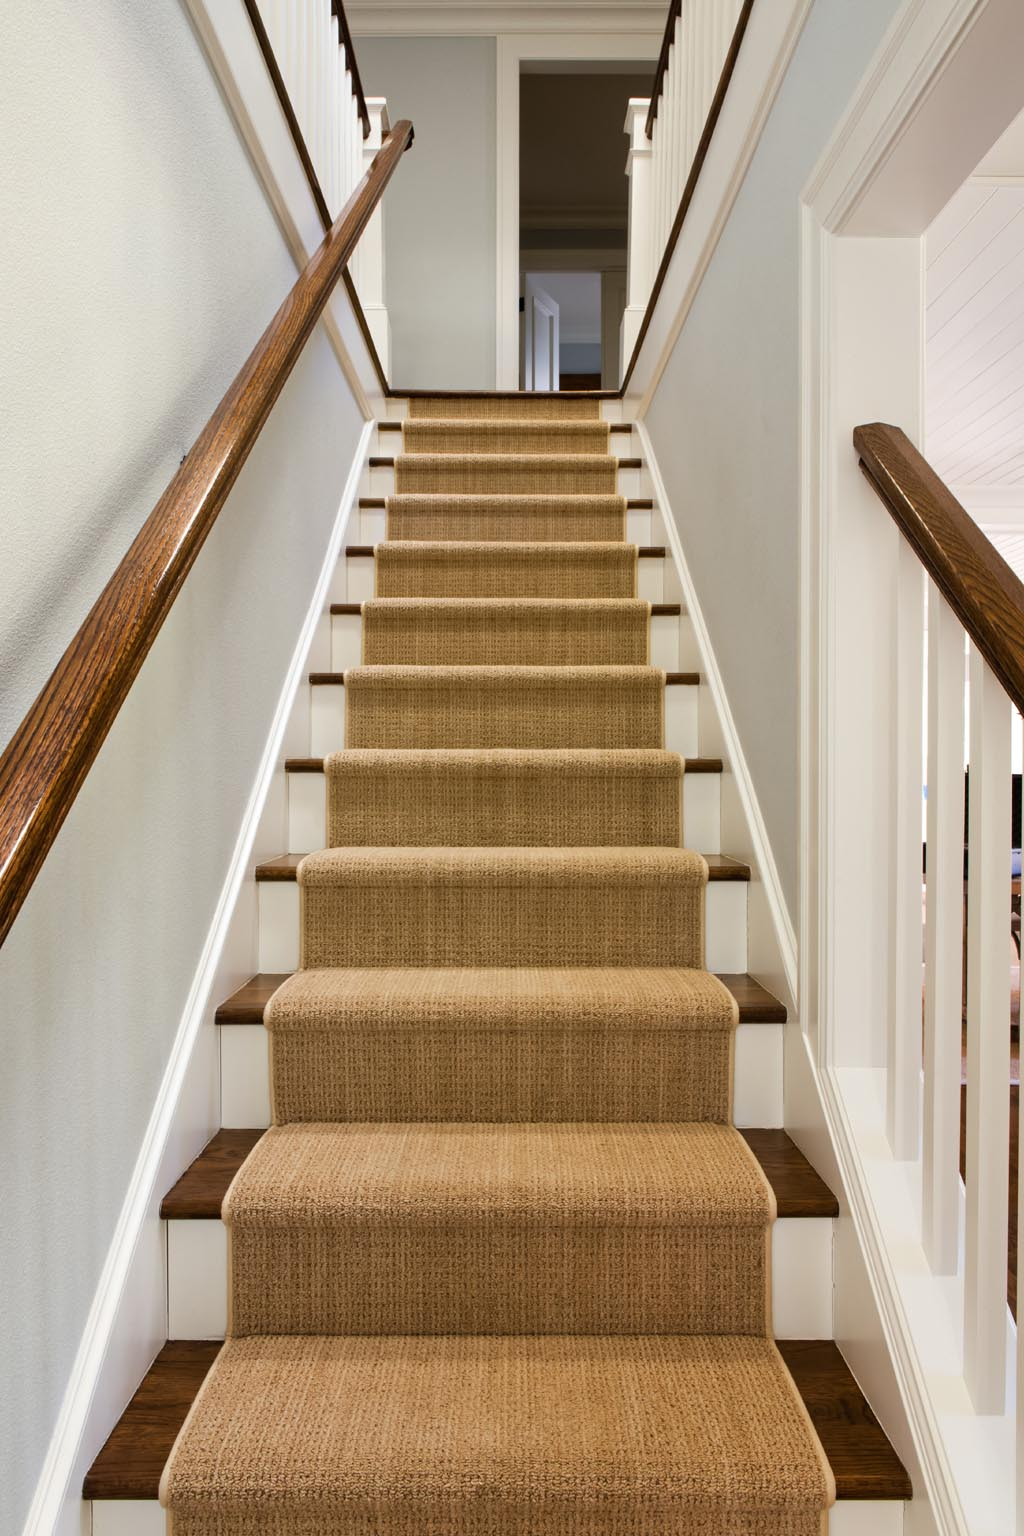 Stair Runners on Carpet